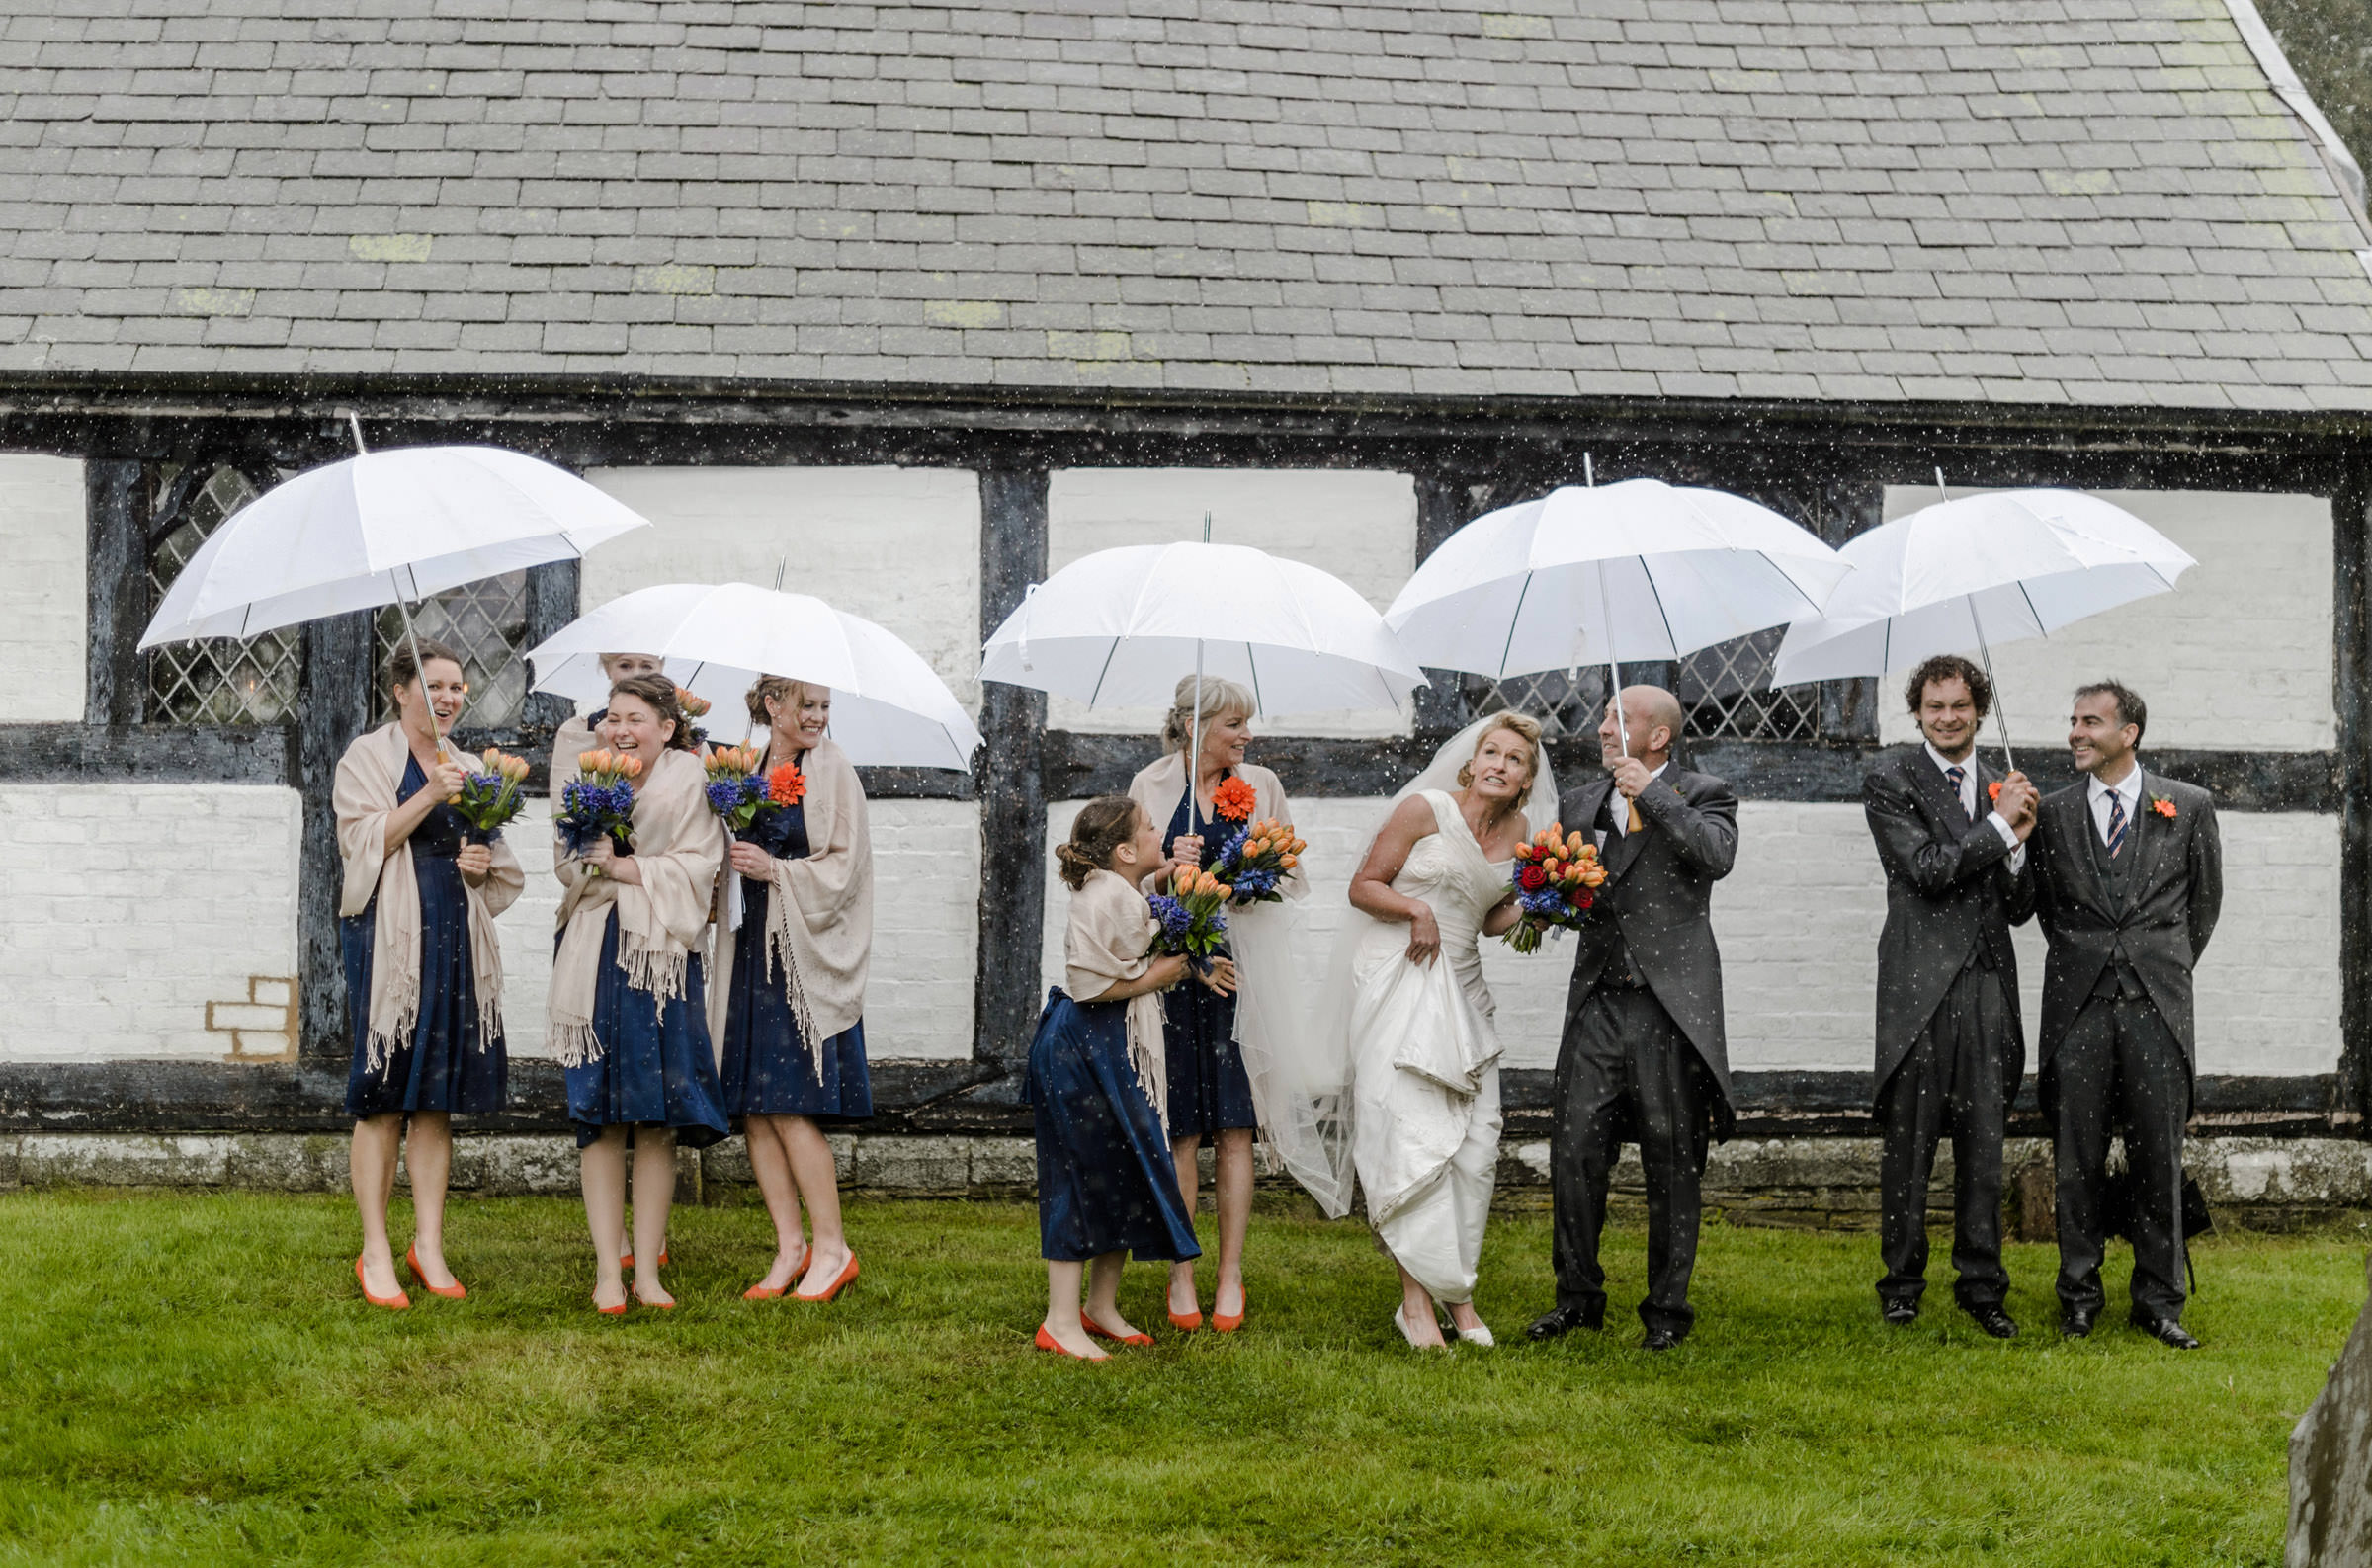 Wedding-Photography-Welsh-Borders-0029.jpg